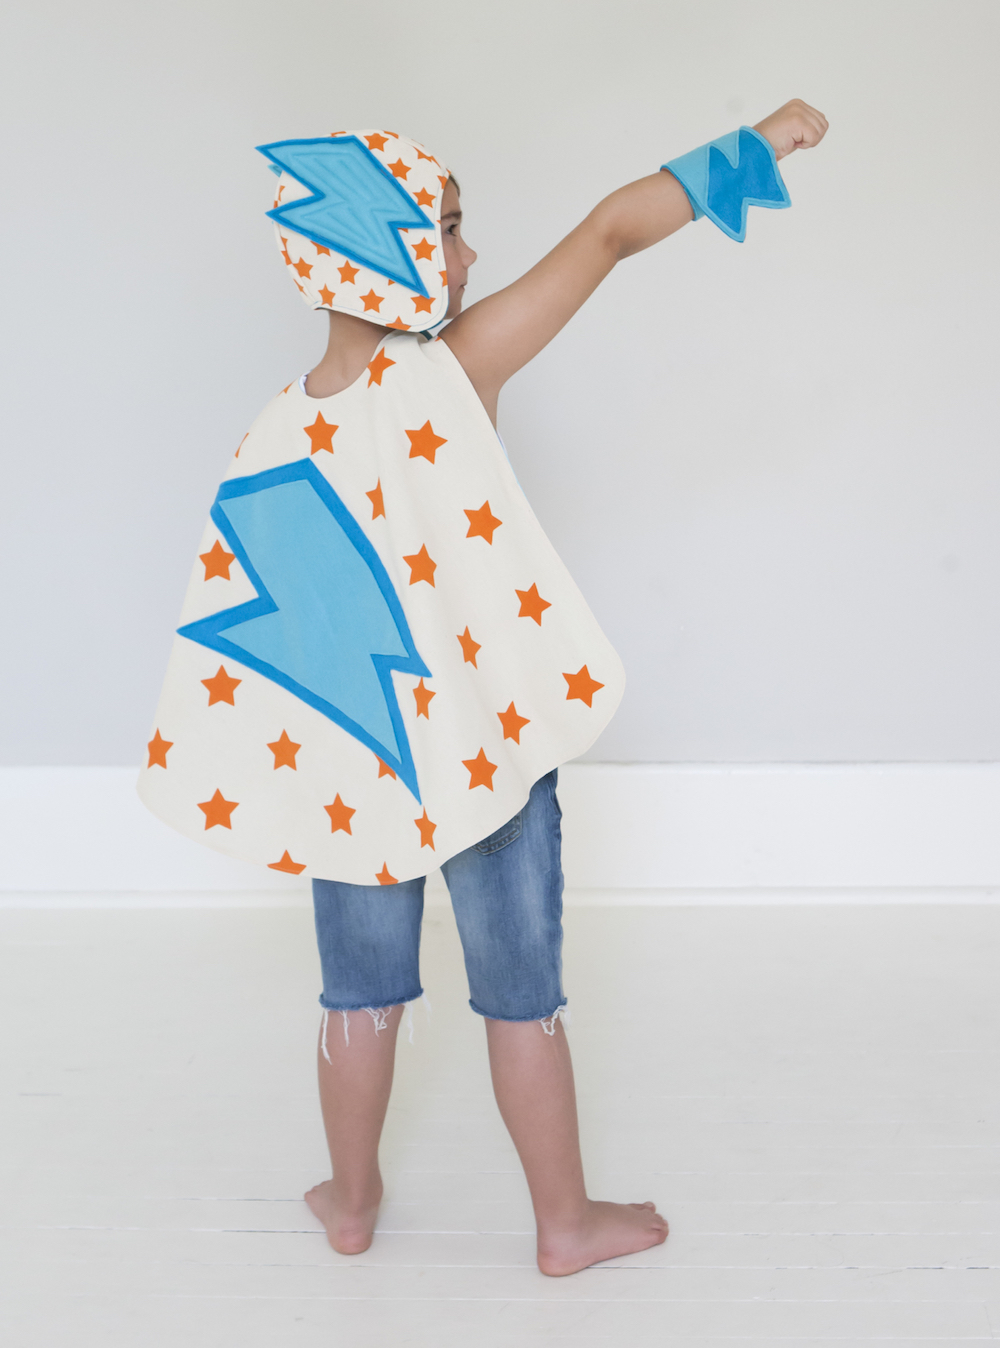 Make your own superhero capes with Superhero Sewing by Lane Huerta